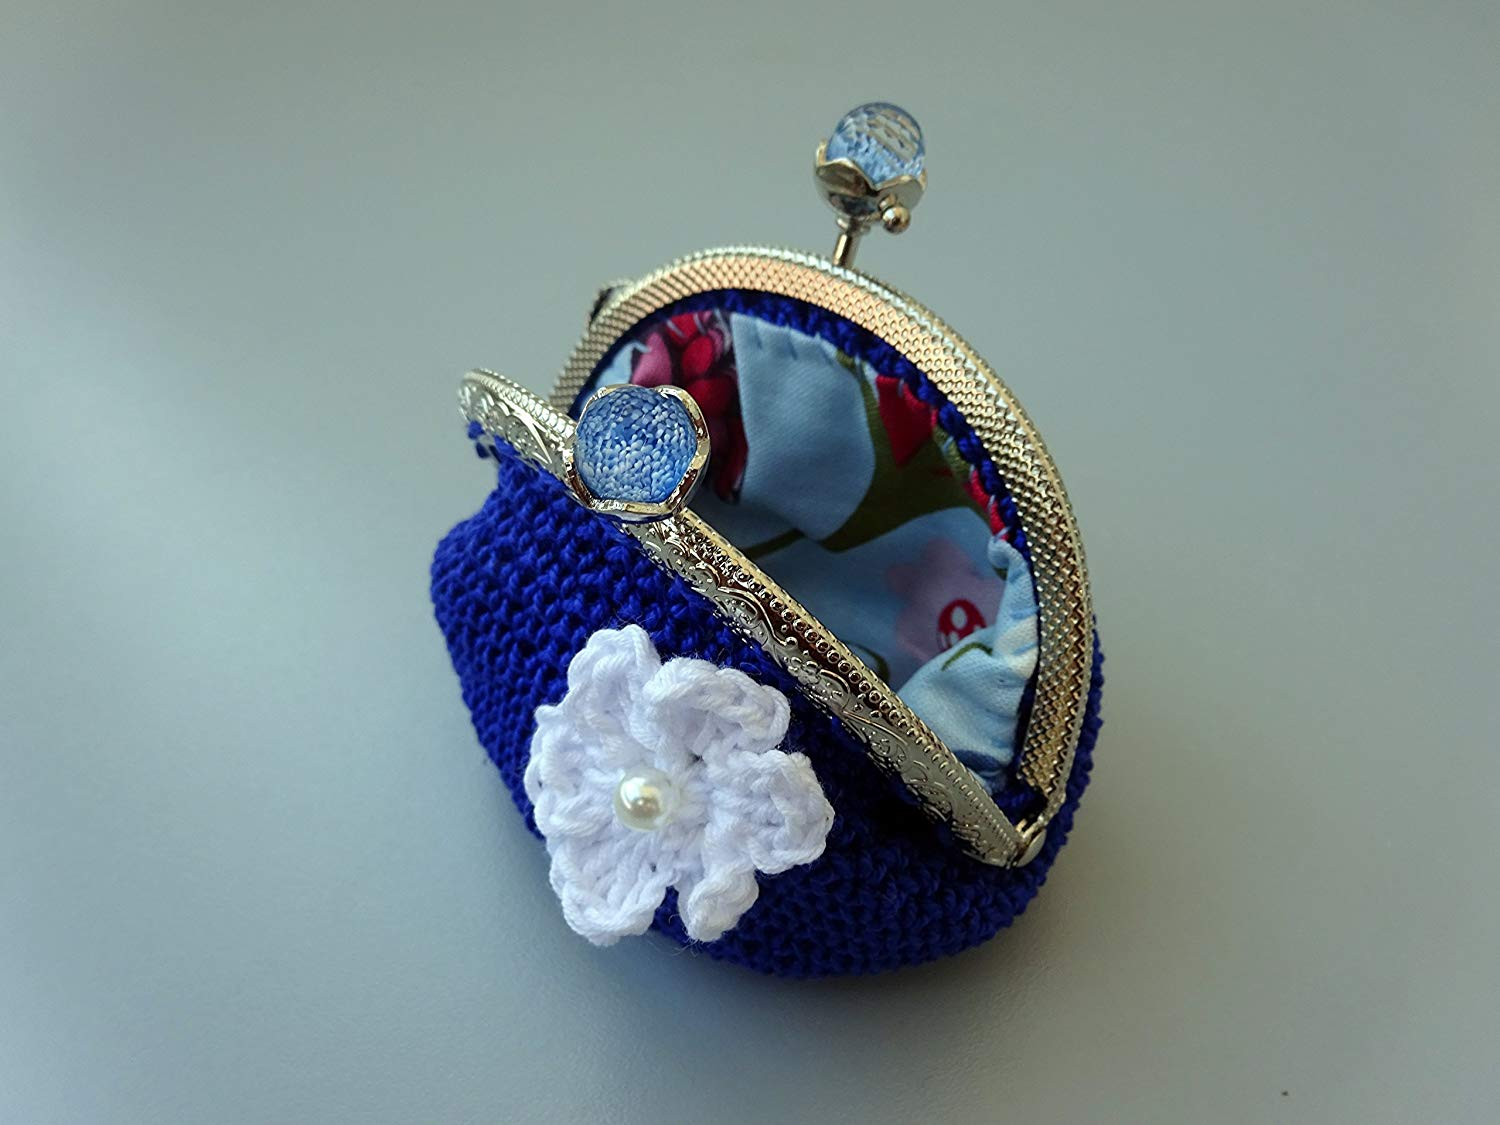 Cheap fabric coin purse patterns find fabric coin purse patterns